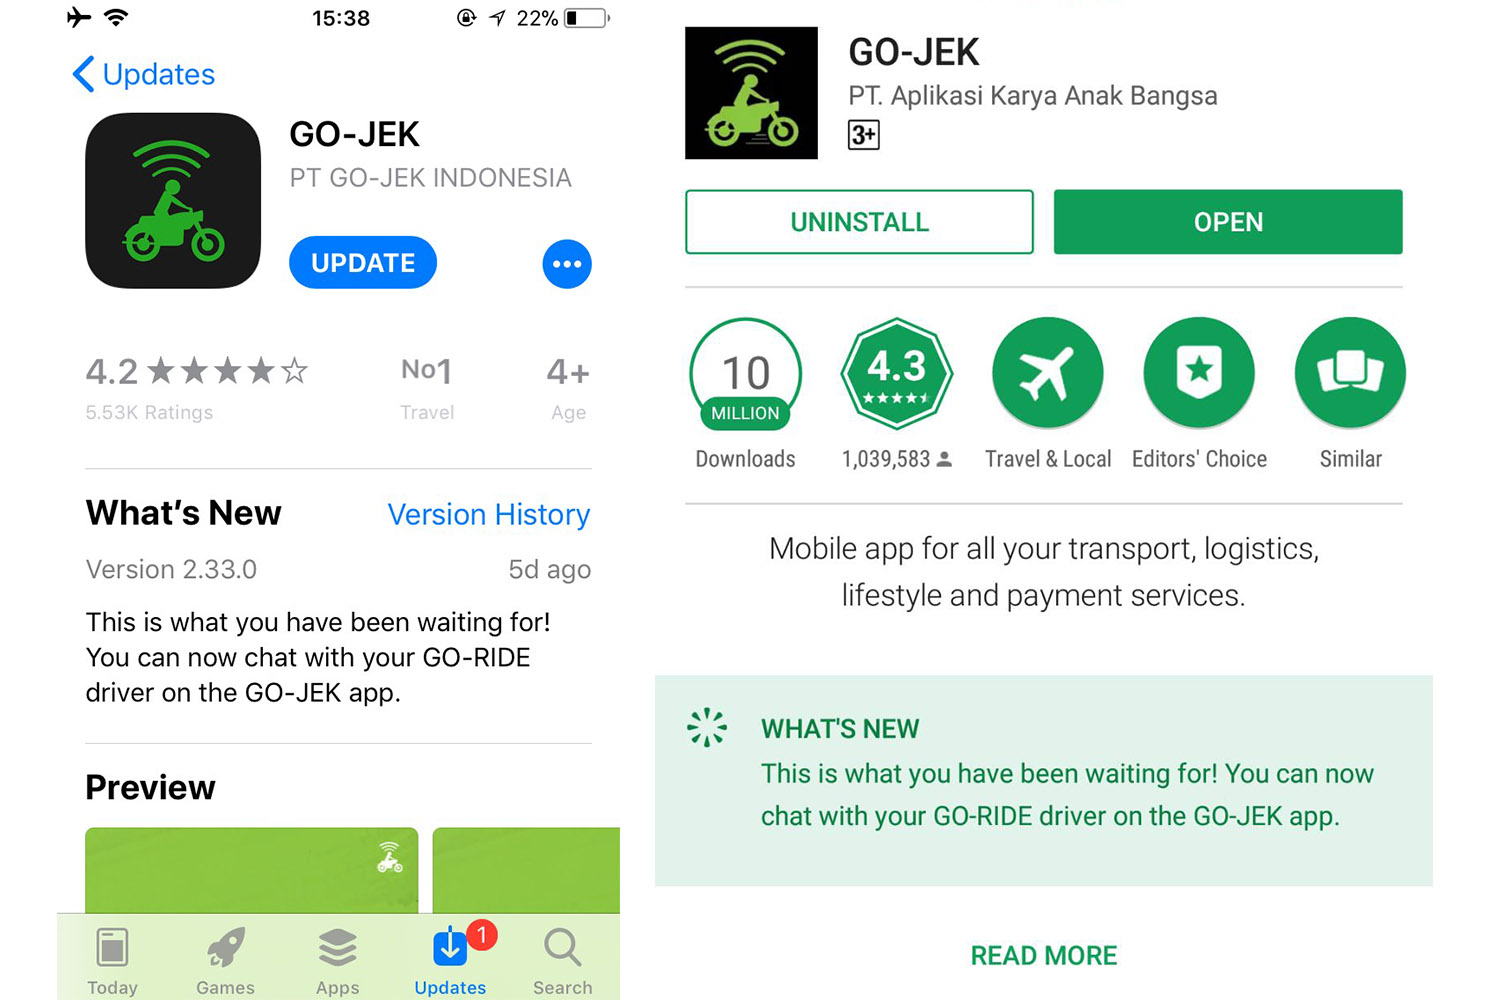 NHBL - GO-JEK Improves Their System by Adding In-app Messaging